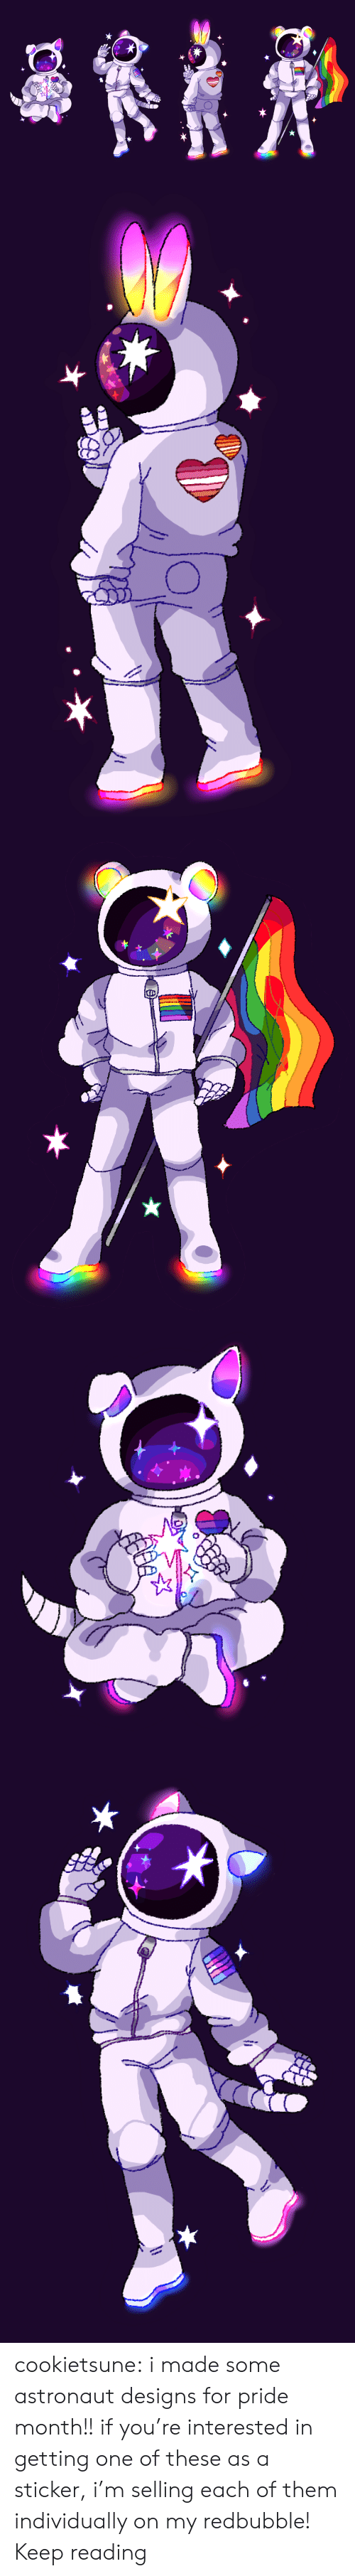 Target, Tumblr, and Blog: cookietsune:  i made some astronaut designs for pride month!! if you're interested in getting one of these as a sticker, i'm selling each of them individually on my redbubble! Keep reading